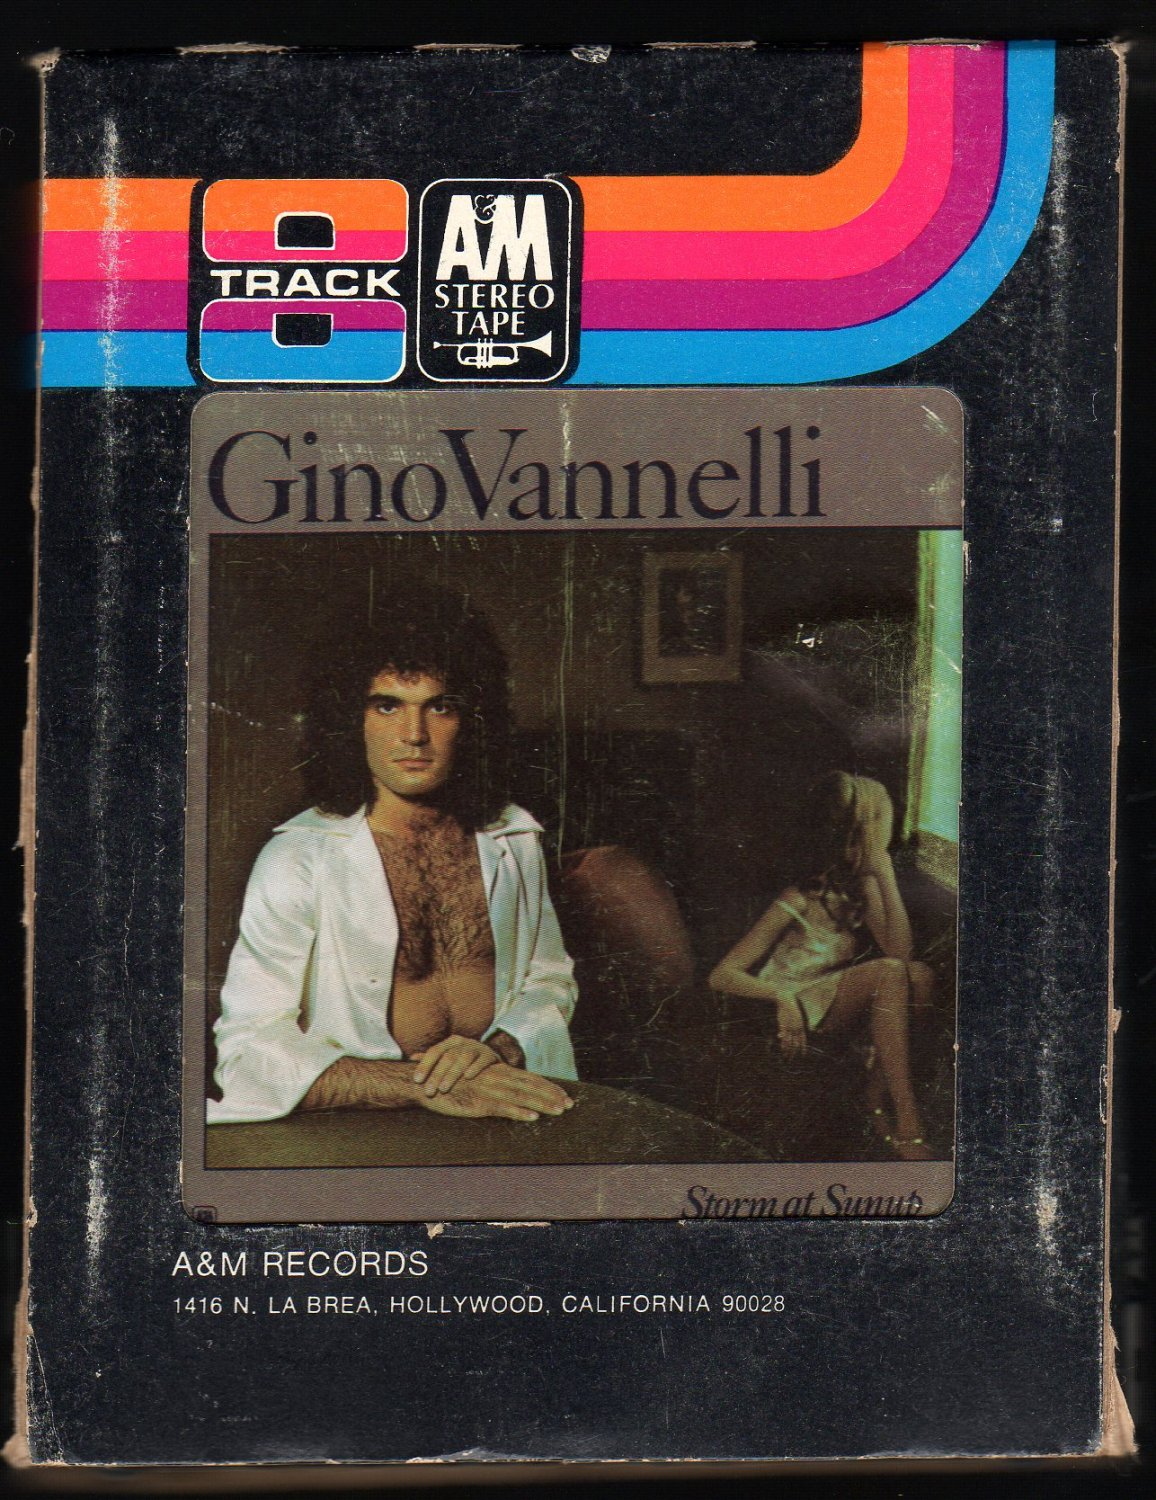 Gino Vannelli - Storm At Sunup 1975 A&M A22 8-TRACK TAPE